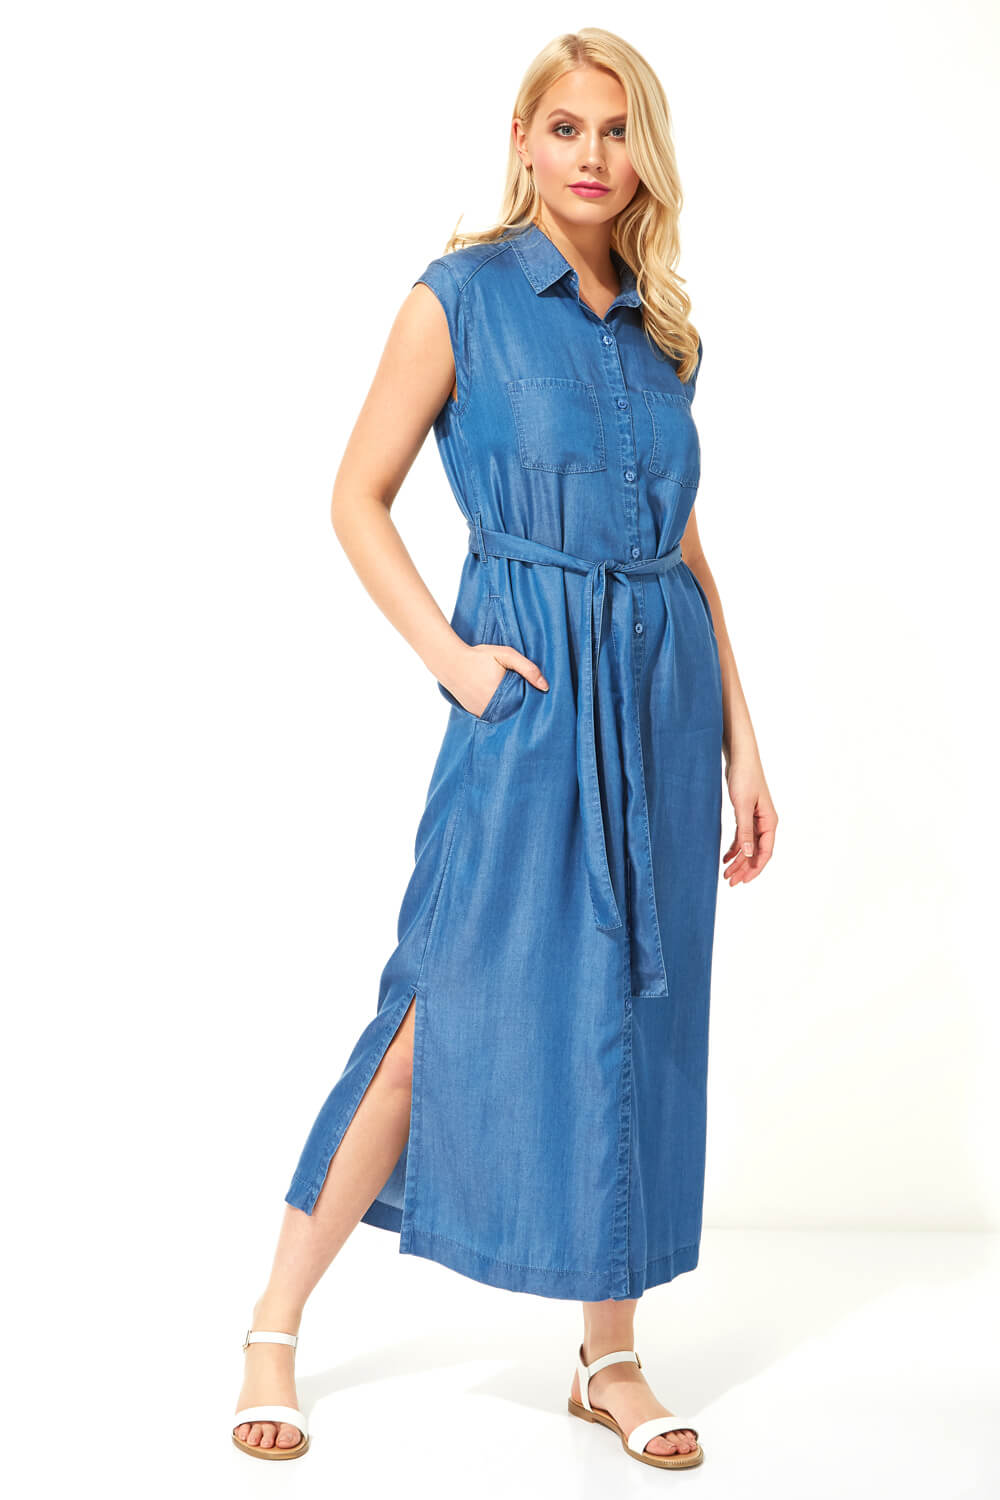 Button-Through-Midi-Denim-Dress-Women-Roman-Originals miniatuur 7